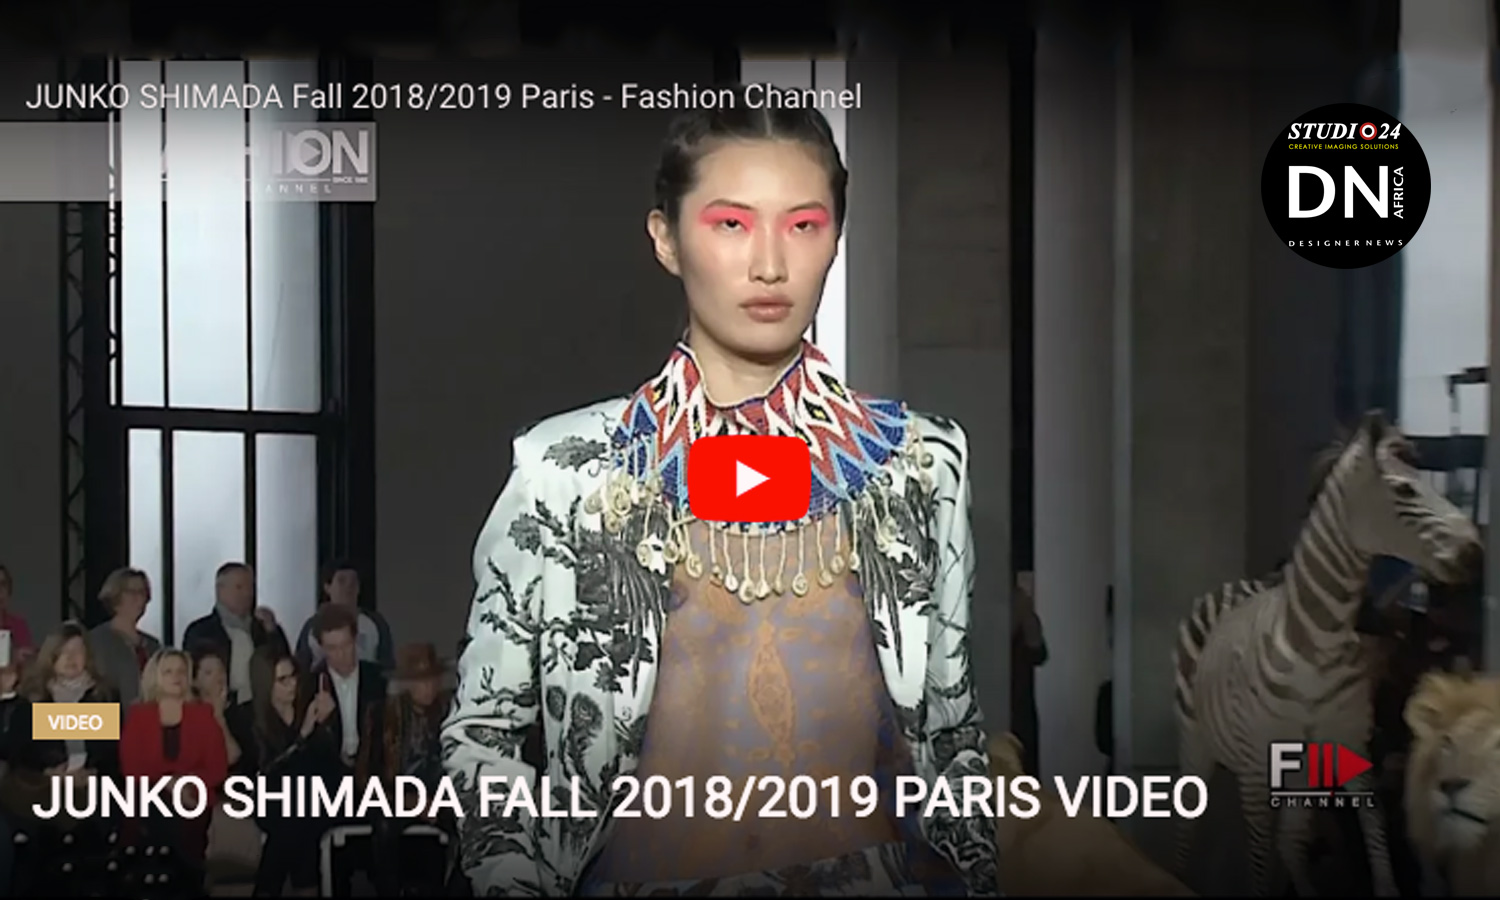 AFRICAN FASHION STYLE MAGAZINE - JUNKO SHIMADA Fall 2018/2019 Paris Video - Media Partner DN MAG, DN AFRICA -STUDIO 24 NIGERIA - STUDIO 24 INTERNATIONAL